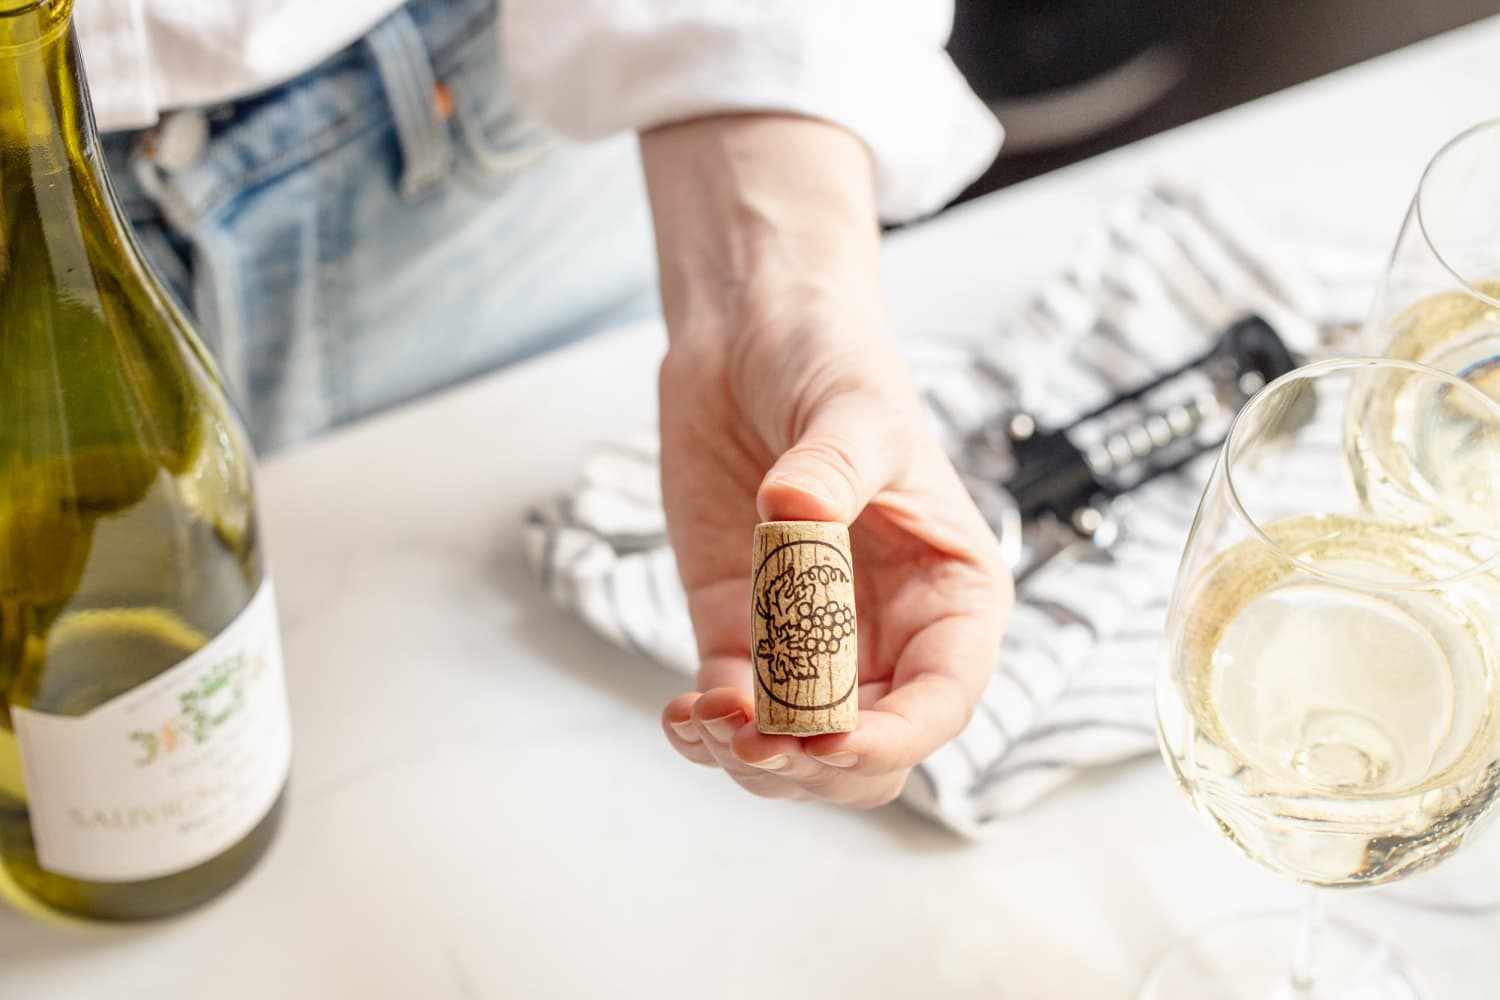 The Last Thing You Should Do with a Wine Cork